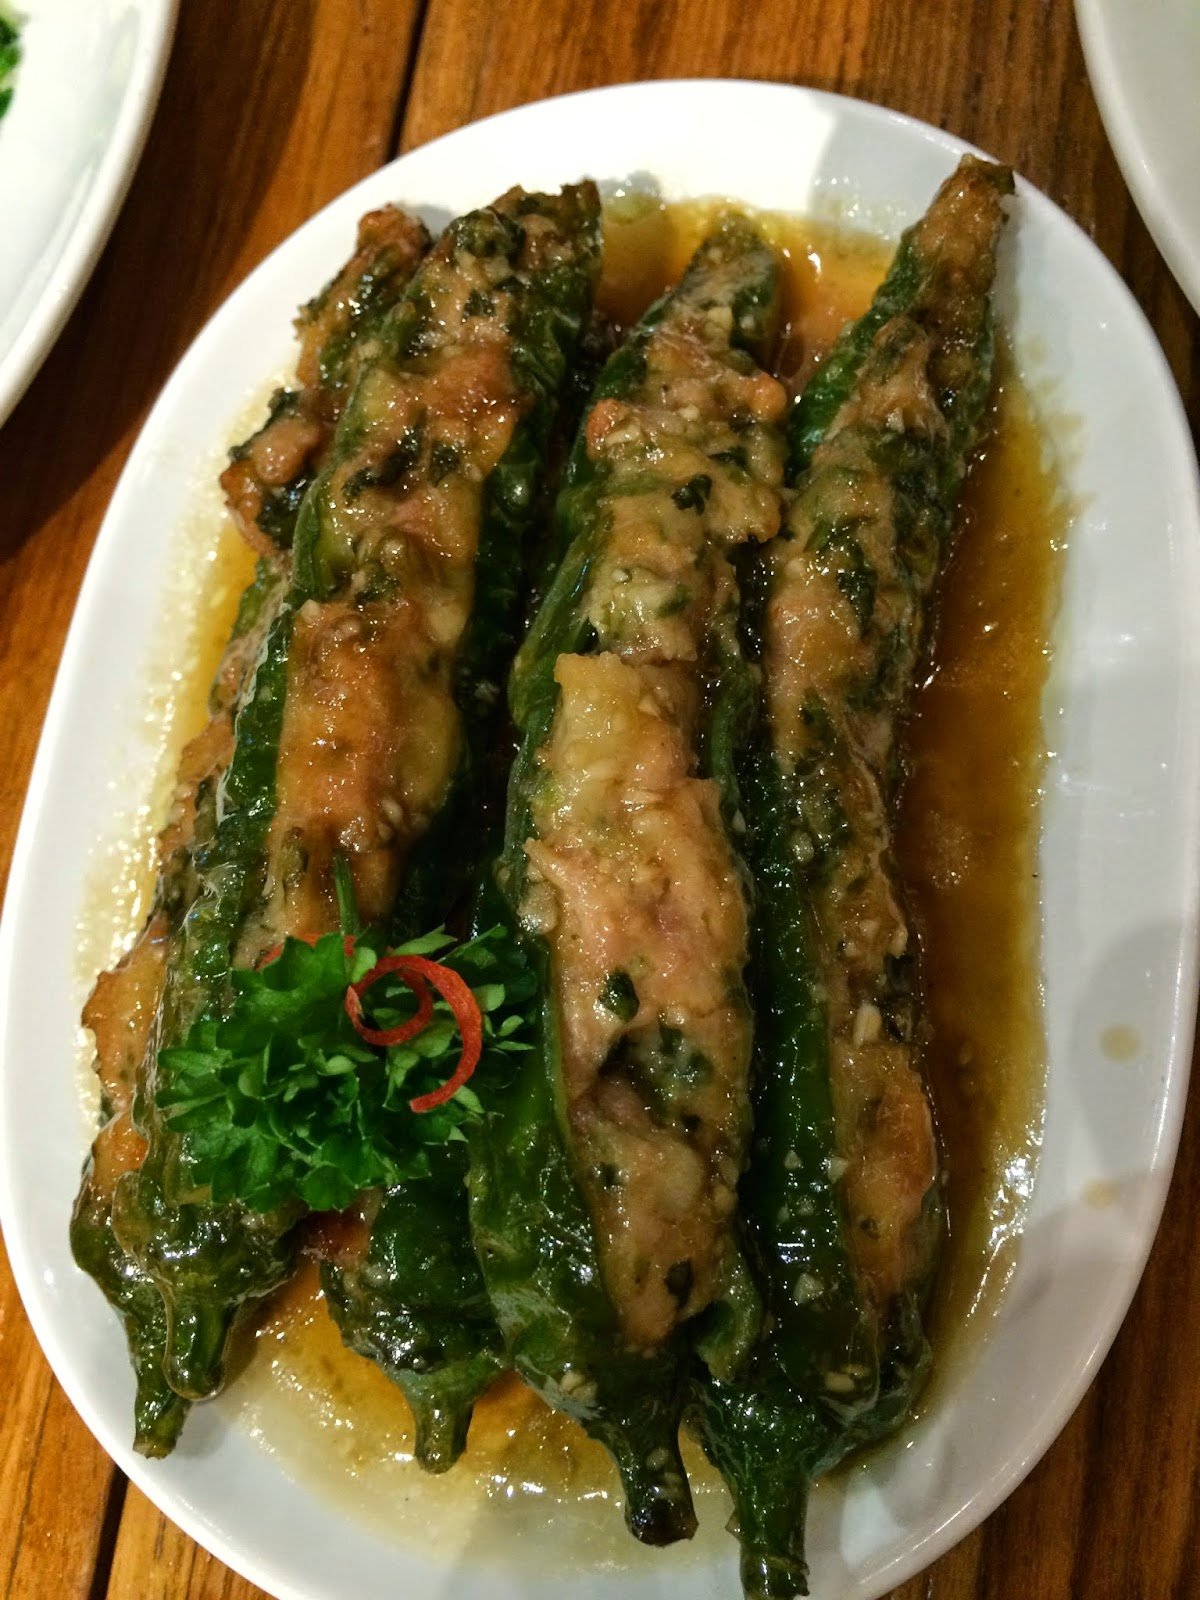 Green Chillies stuffed with mince at Din Tai Fung